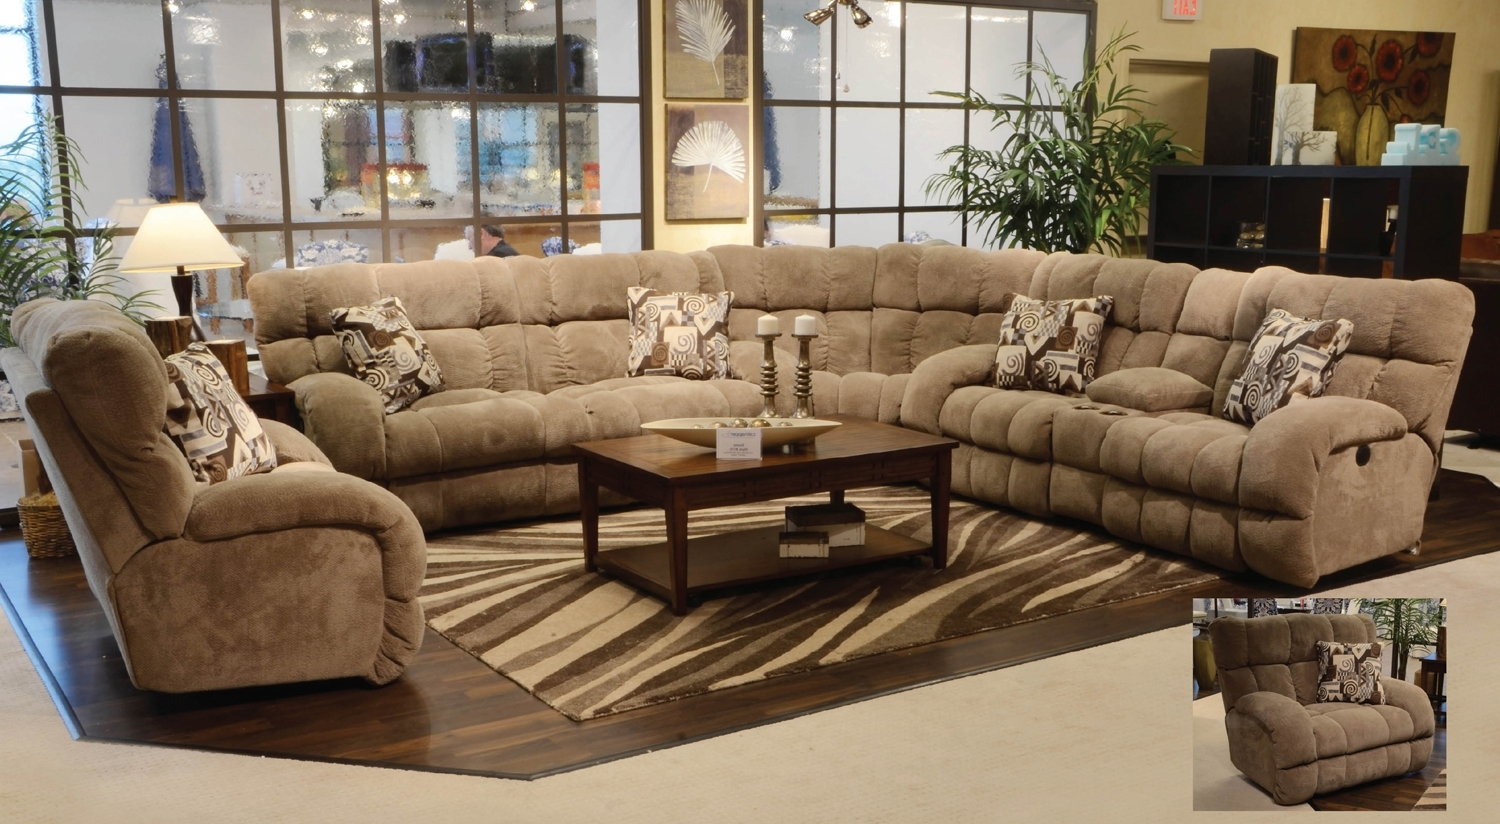 Deep Sofas With Chaise Throughout Famous Sofa ~ Comfy Deep Couches And Sofas (View 14 of 15)